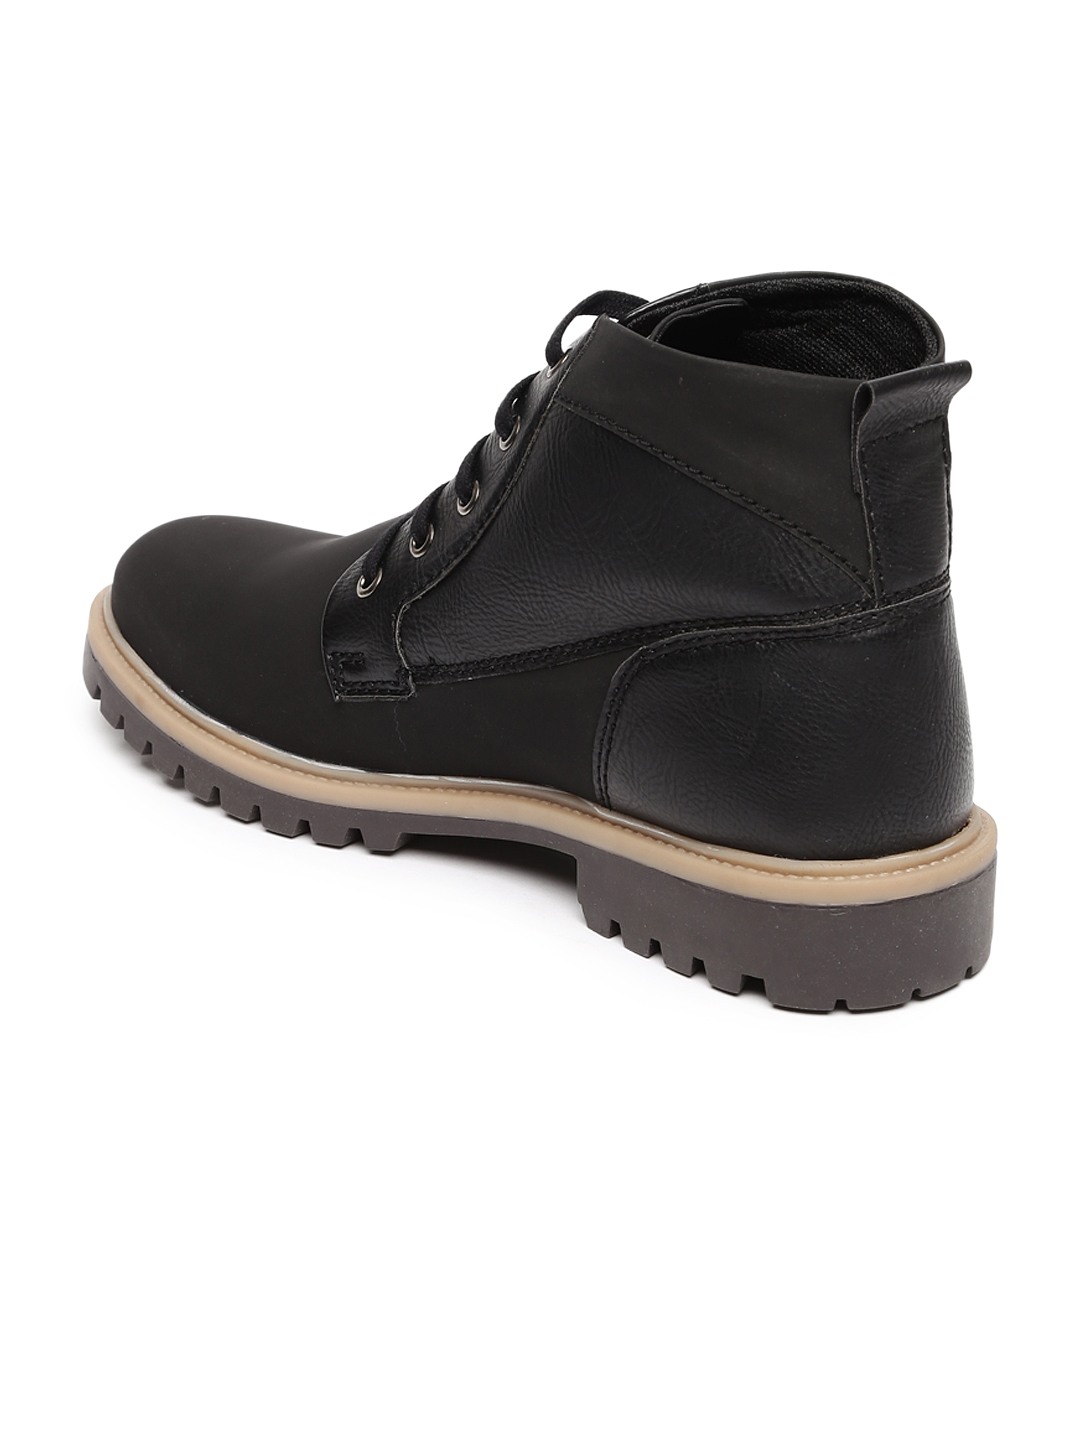 e5eef613a6a Buy Provogue Men Black Solid High Top Flat Boots - Casual Shoes for ...